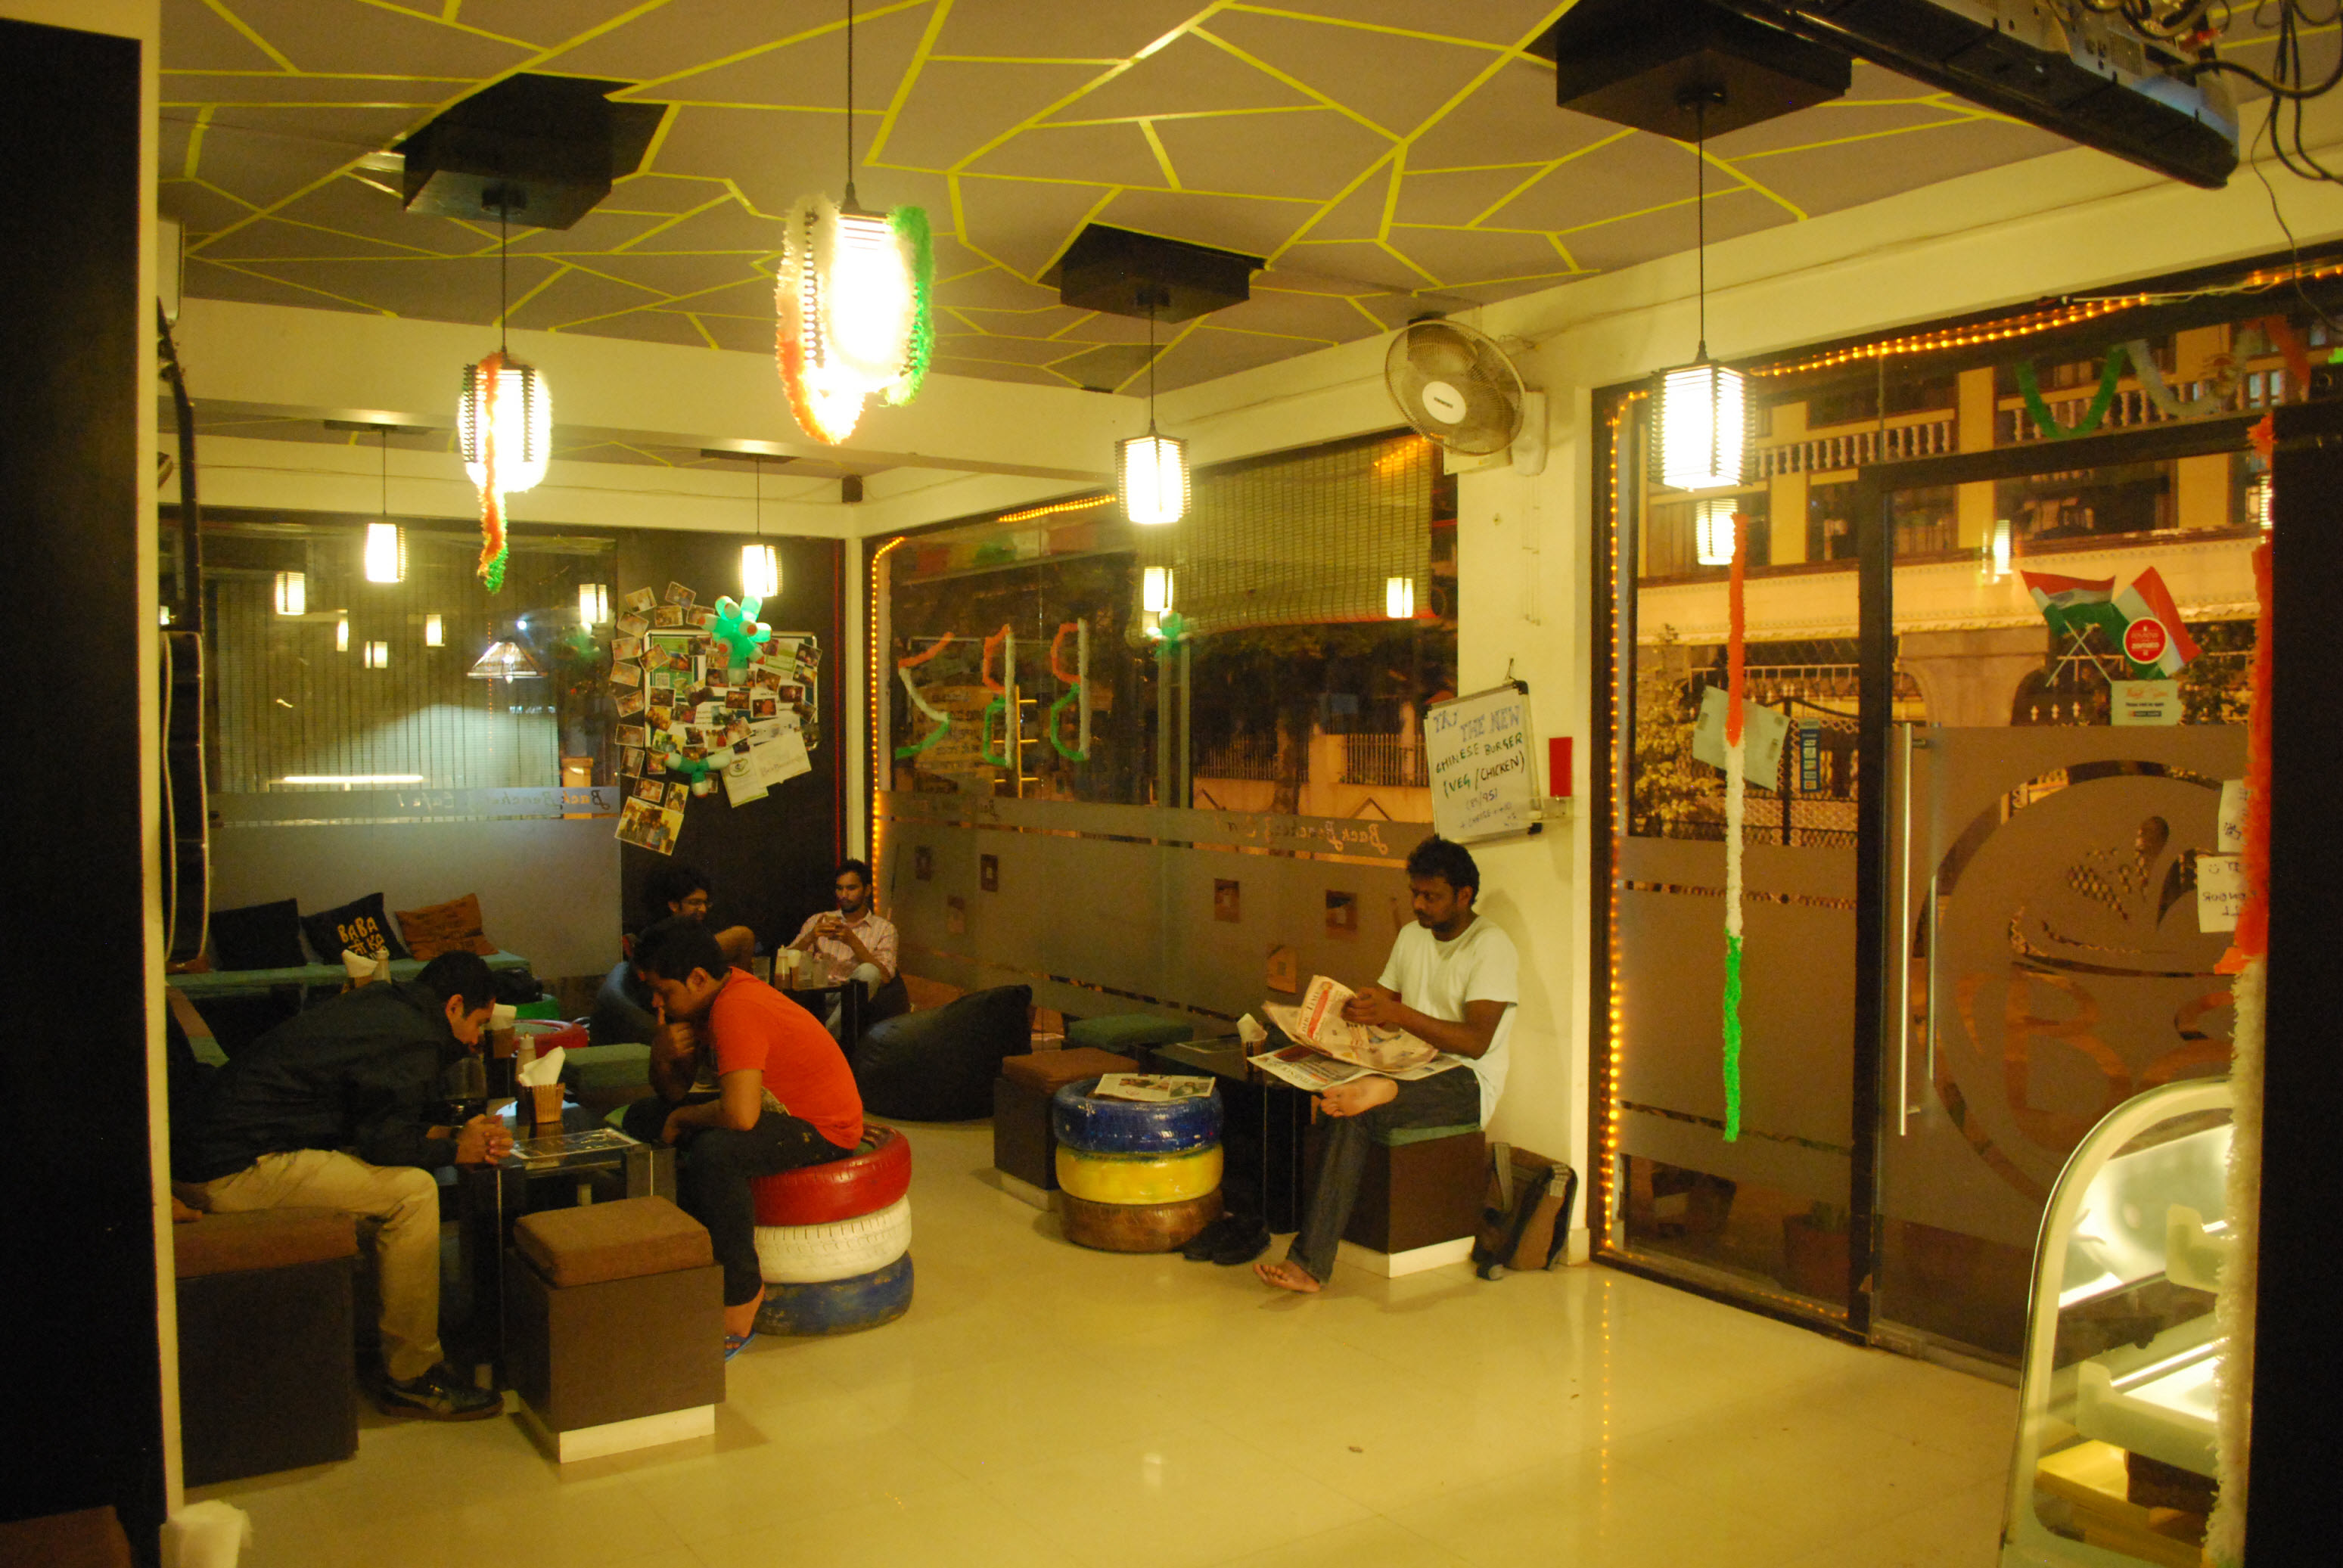 Modern Restro Cafe near IT Hub for Sale in Bangalore